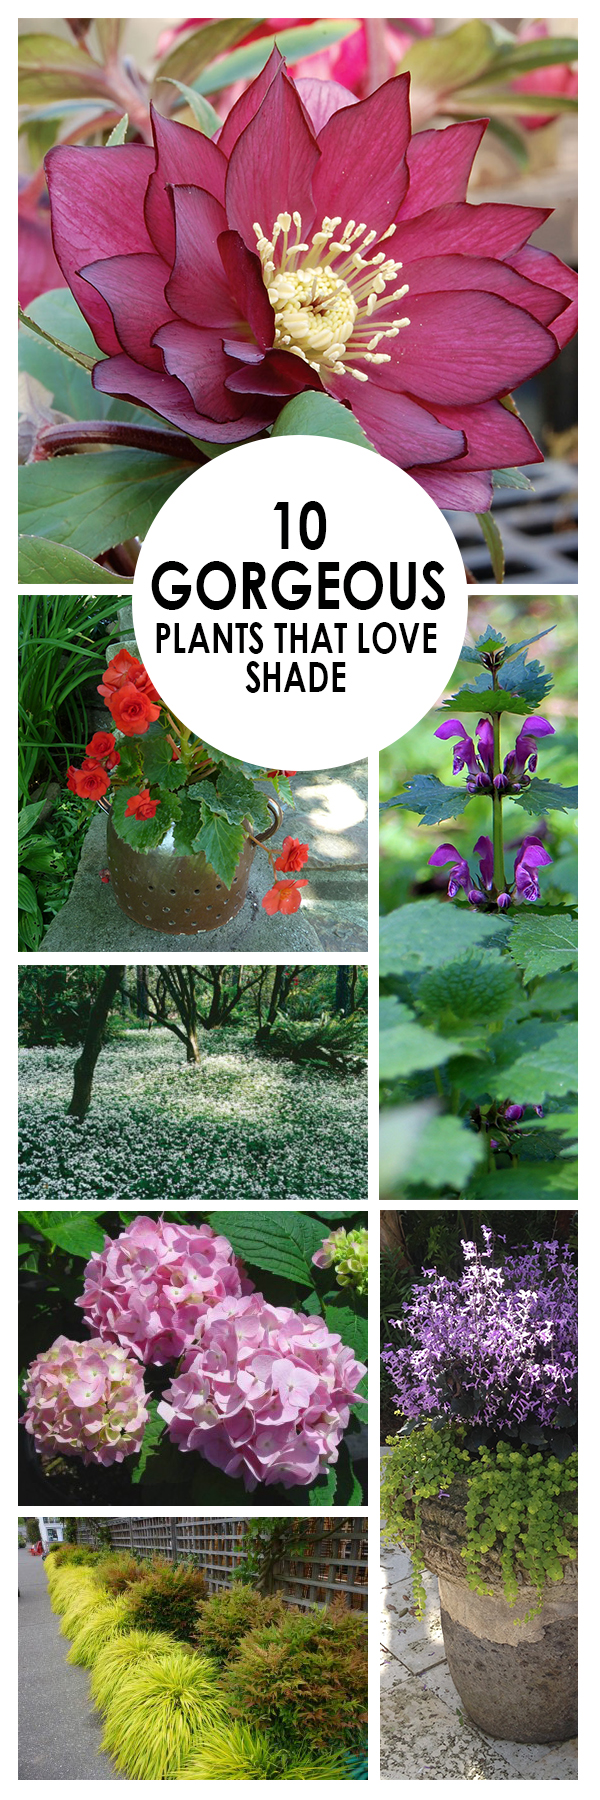 Shade Plants, Shade Garden, Plants, Gardening, home garden, garden hacks, garden tips and tricks, growing plants, plants, vegetable gardening, planting fruit, flower garden, outdoor living